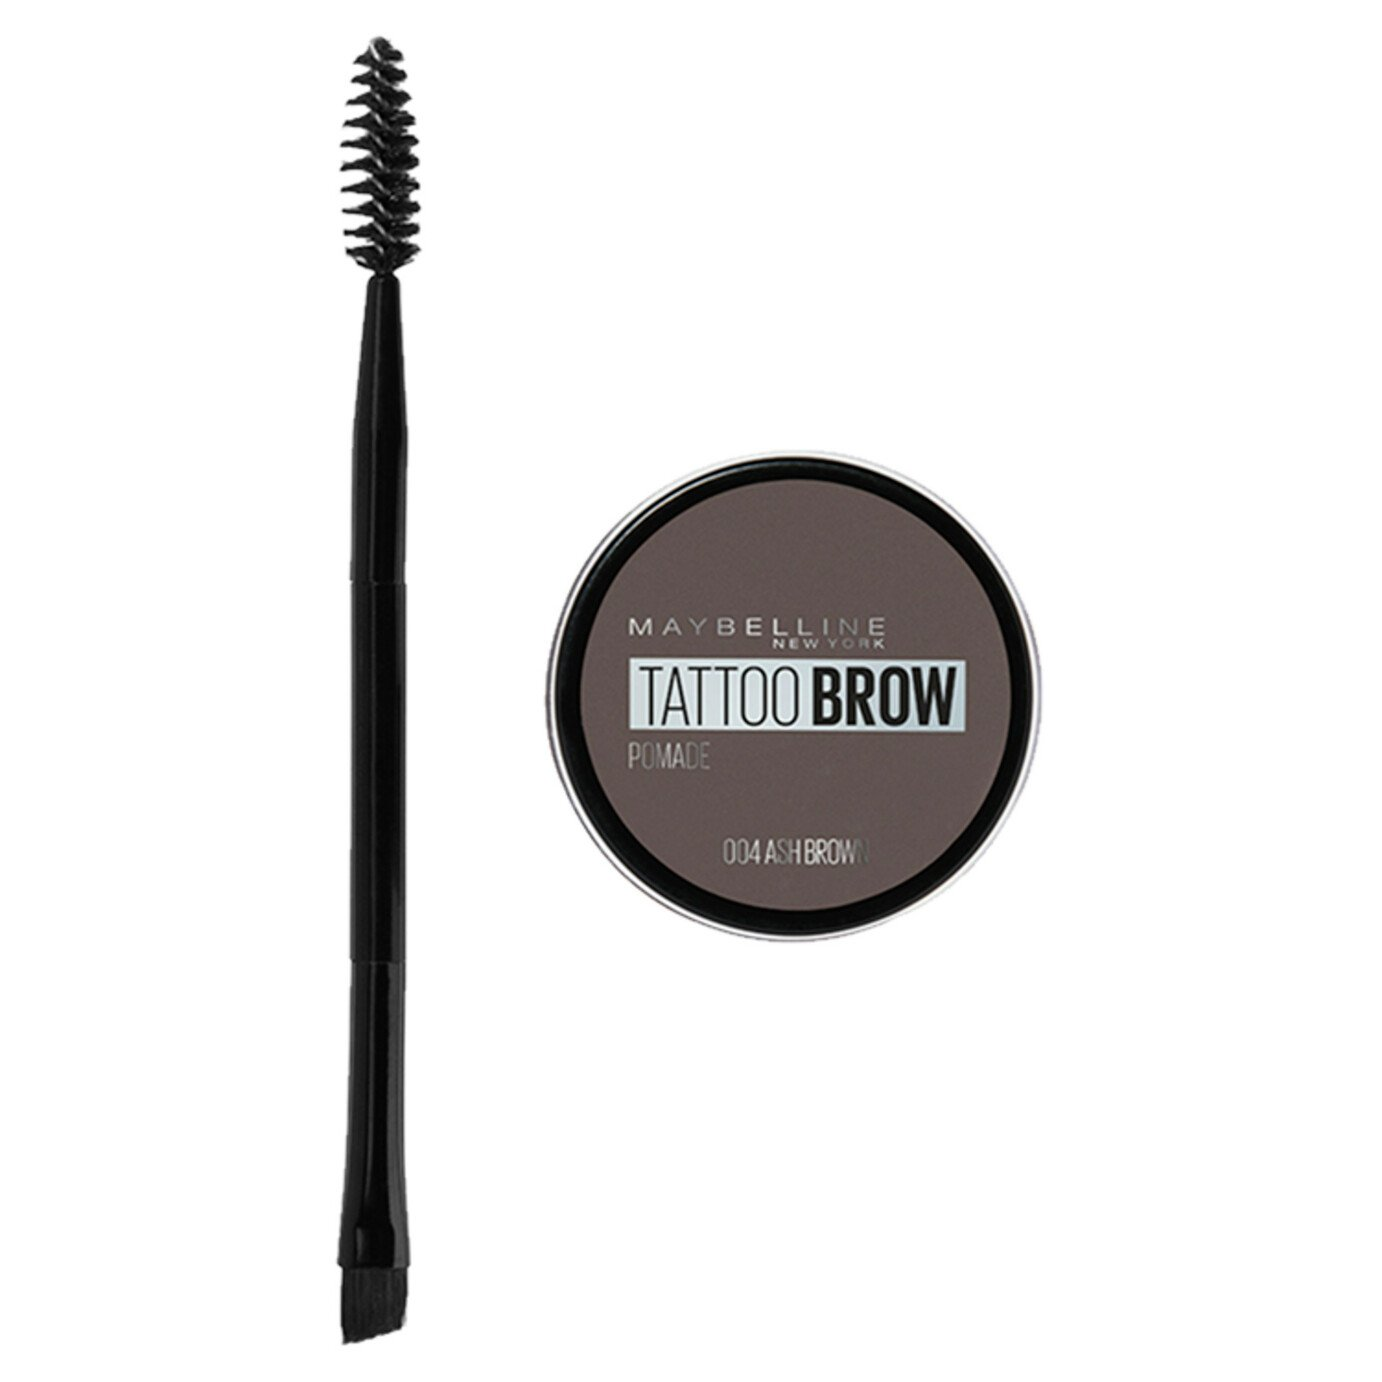 Maybelline Tattoo Brow Pomade - 04 Ash Brown